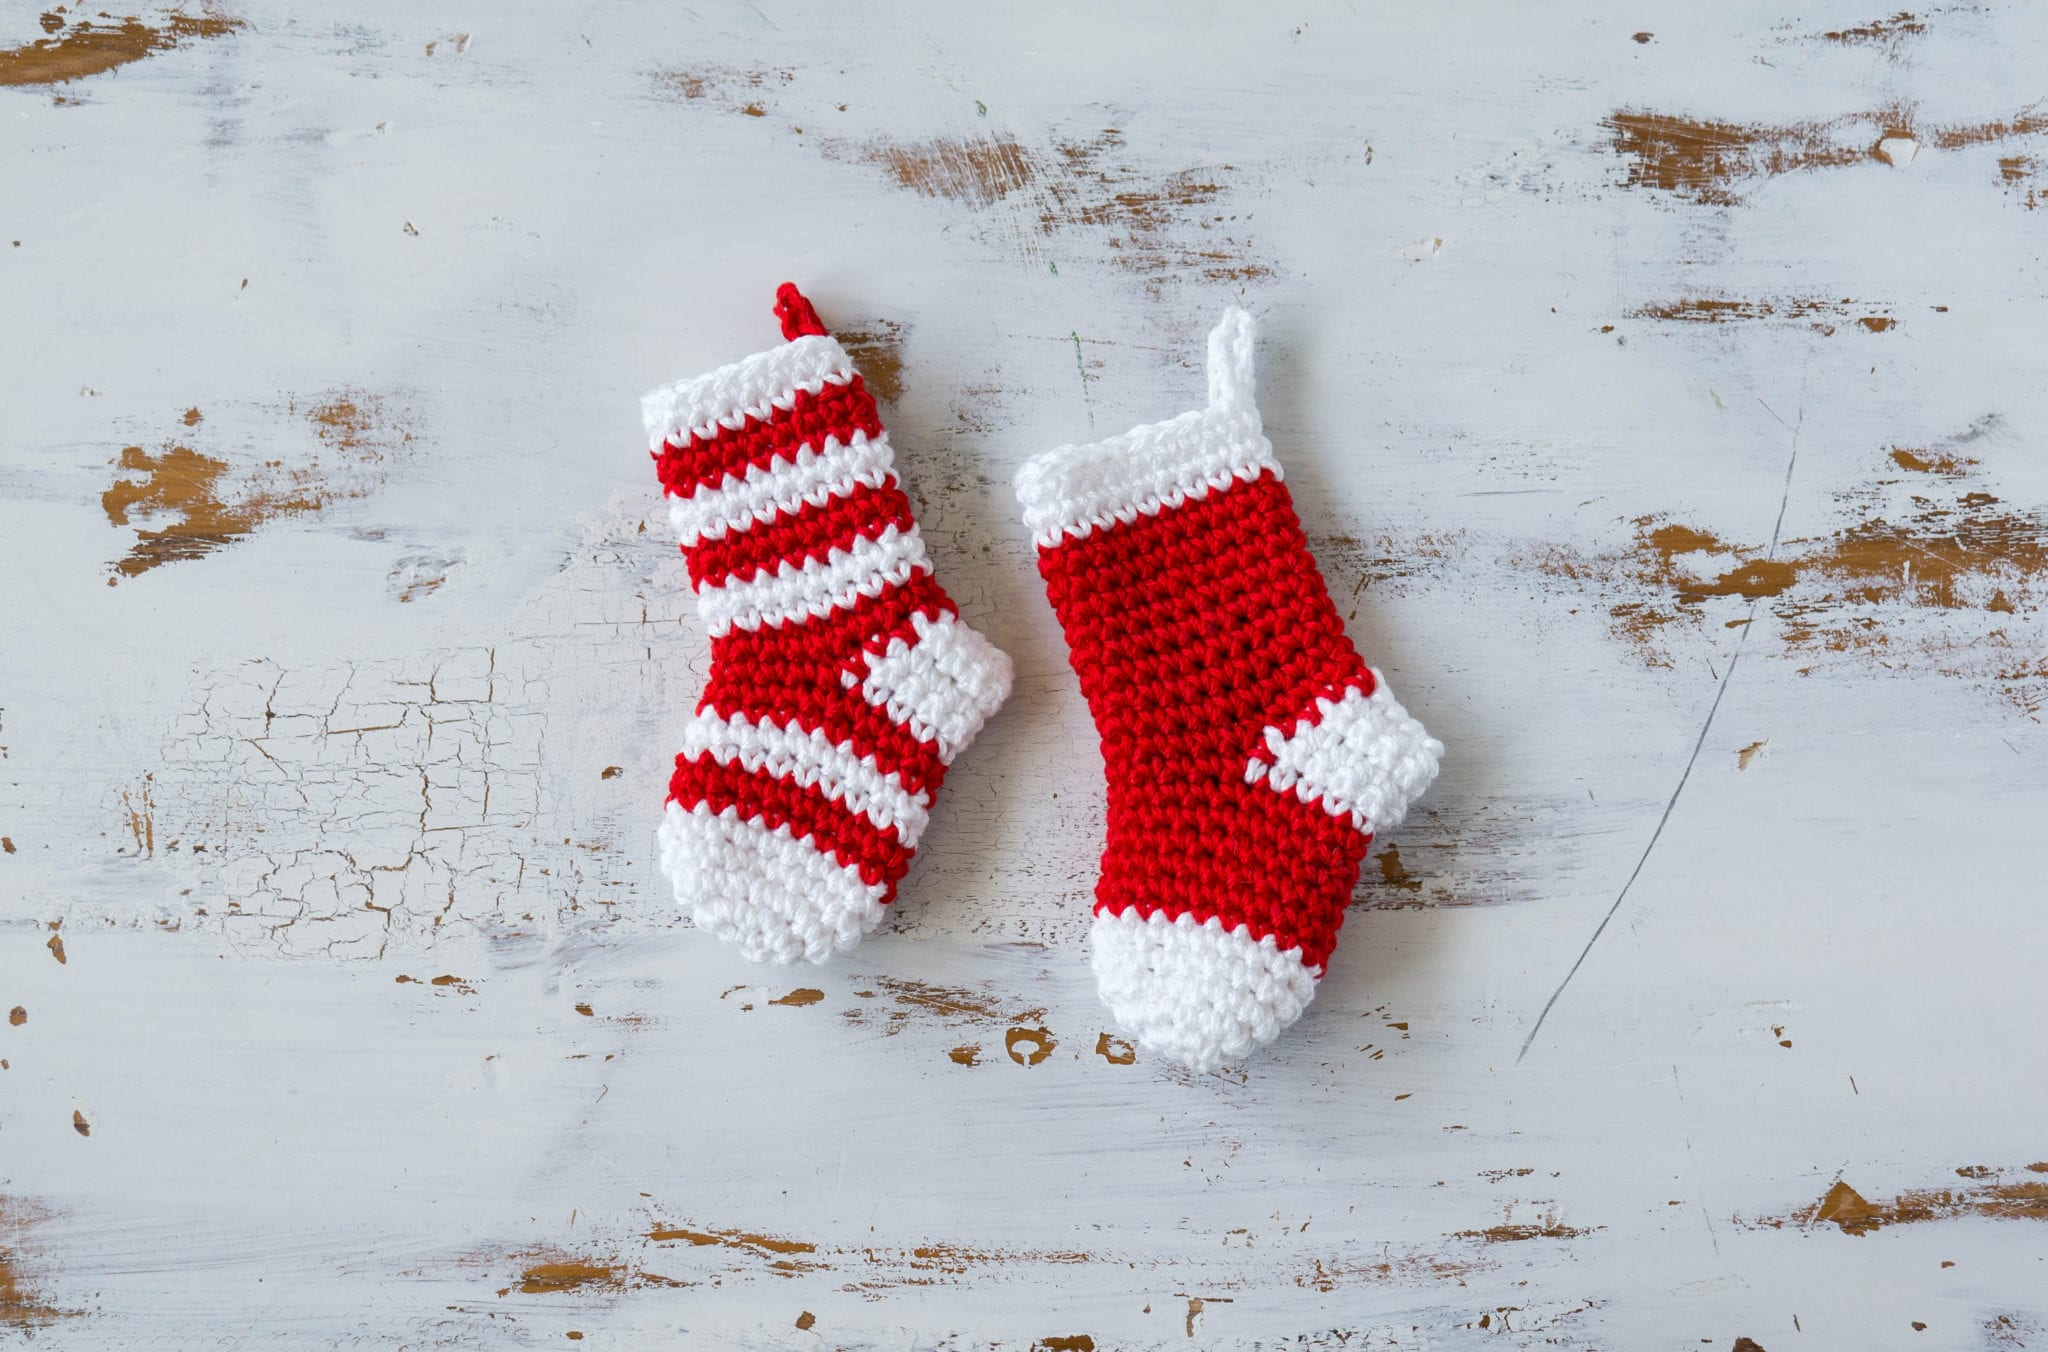 Crochet Mini Stockings Christmas Ornament - Sewrella